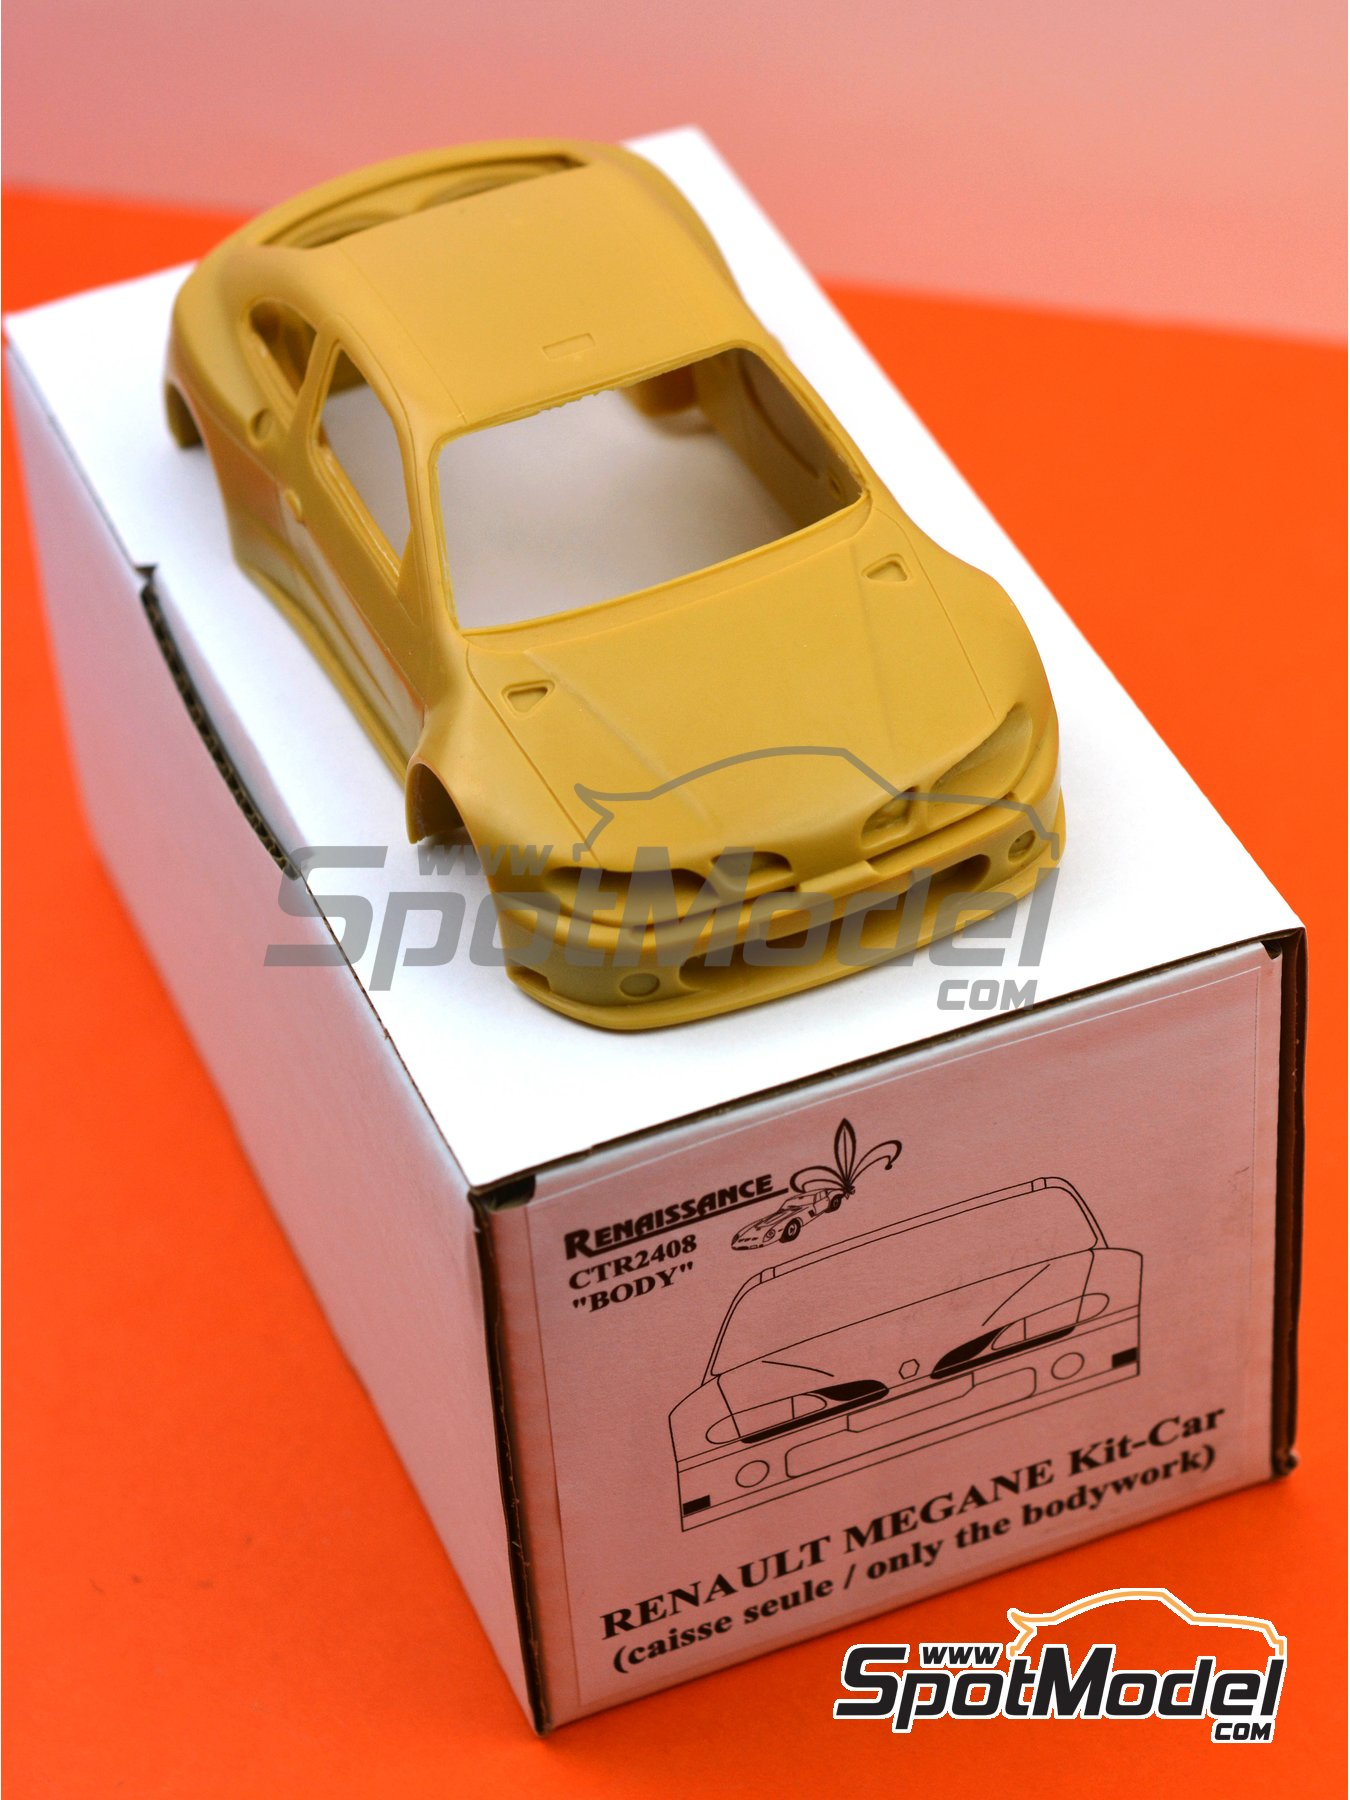 Renault Megane Kit-Car | Bodywork in 1/24 scale manufactured by Renaissance Models (ref. CTR2408-BODY) image